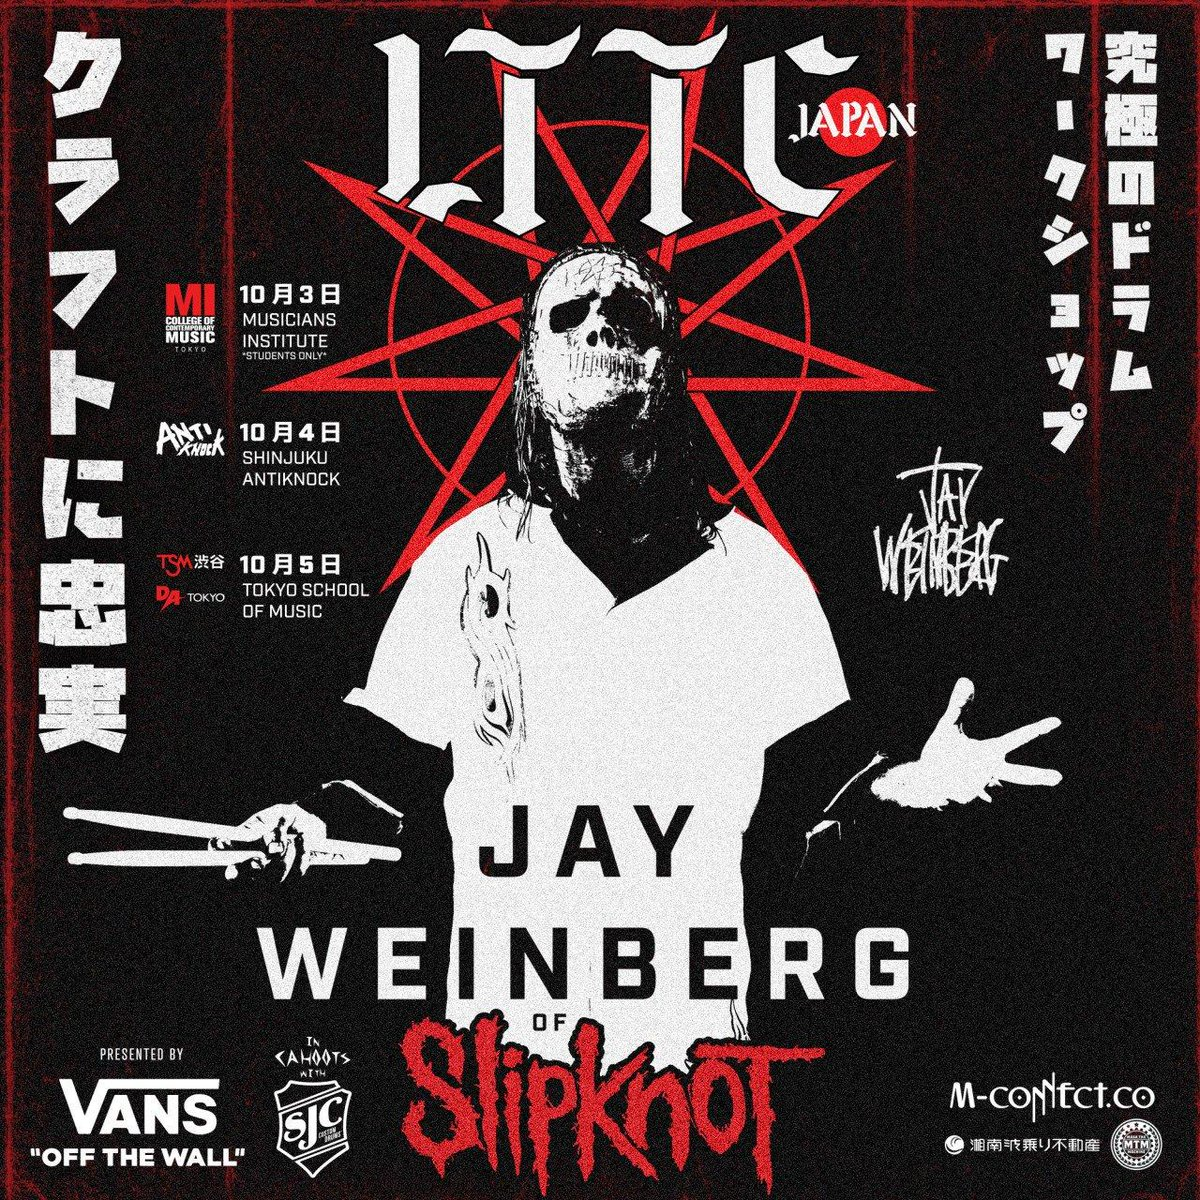 .@Vans_66 Presents: Loyal to the Craft Tour featuring @jayweinbergdrum Location: Tokyo, Japan 🇯🇵 10/3 - *Private Event* at Musicians Institute 10/4 - Shinjuku Antiknock in Shinjuku City 10/5 - Tokyo School of Music in Shibuya RSVP at sjcdrums.com